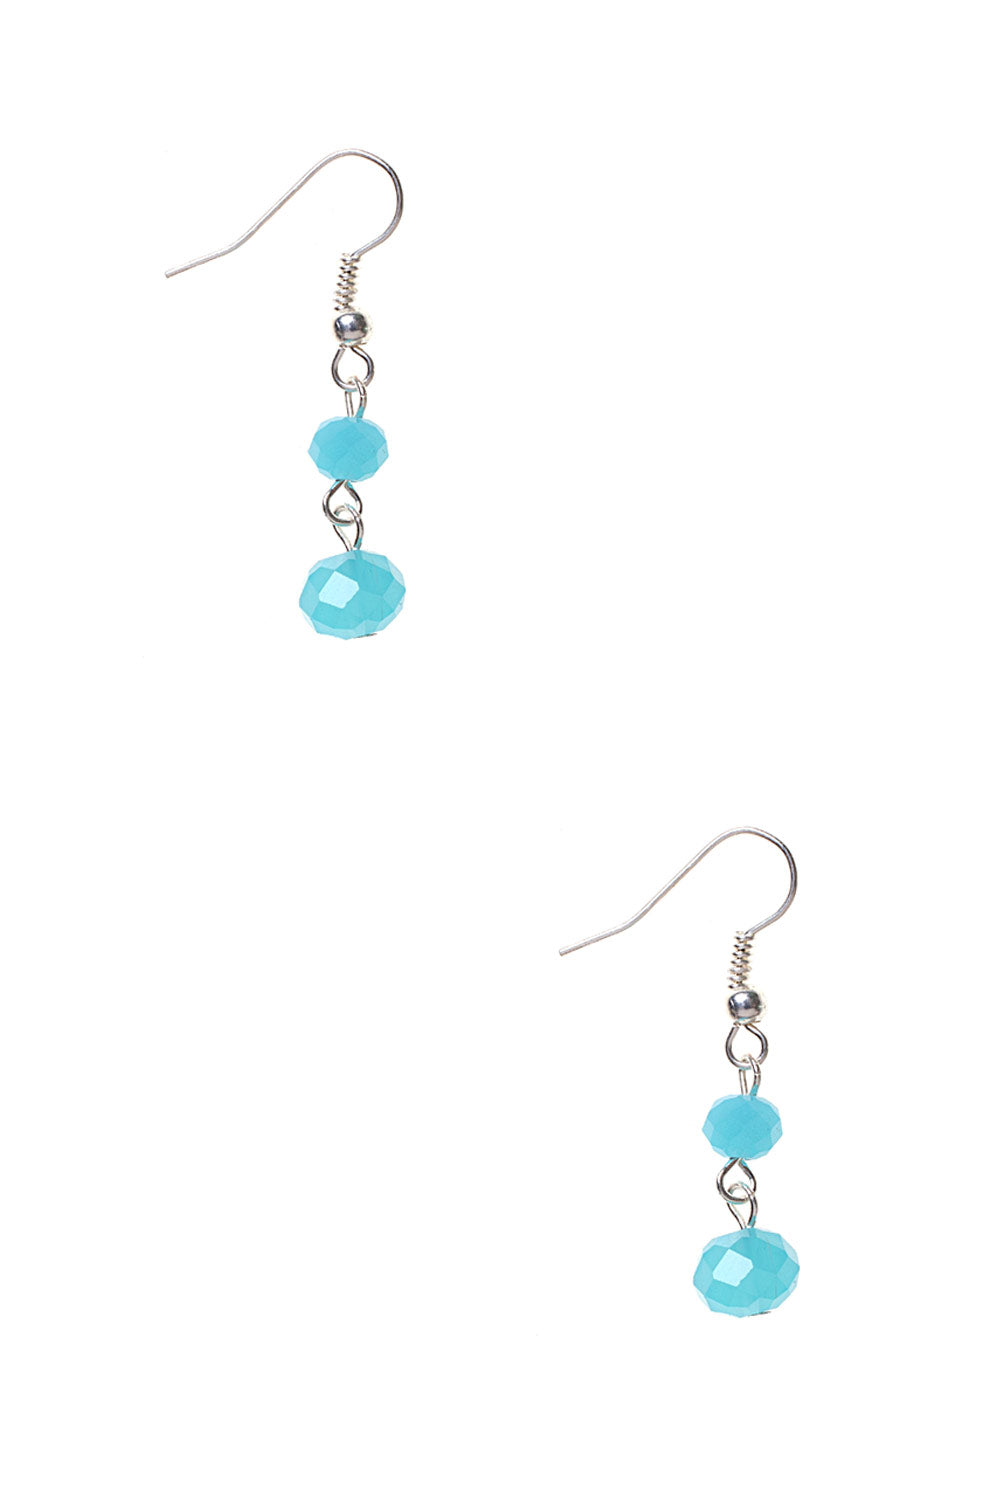 Type 2 Bountiful Blue Earrings